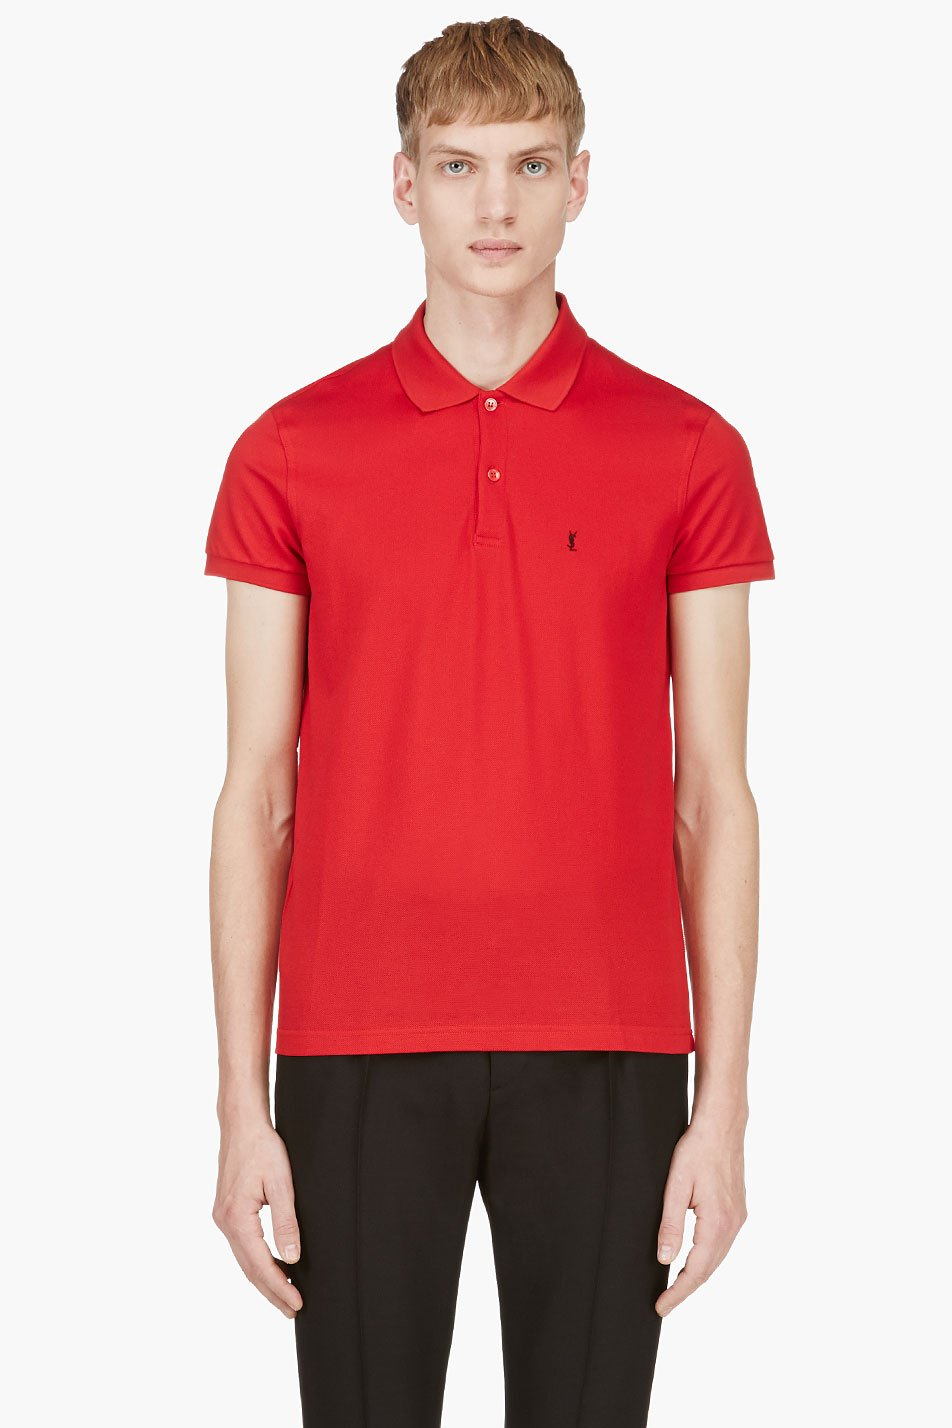 saint laurent red cotton piquandeacute monogrammed polo